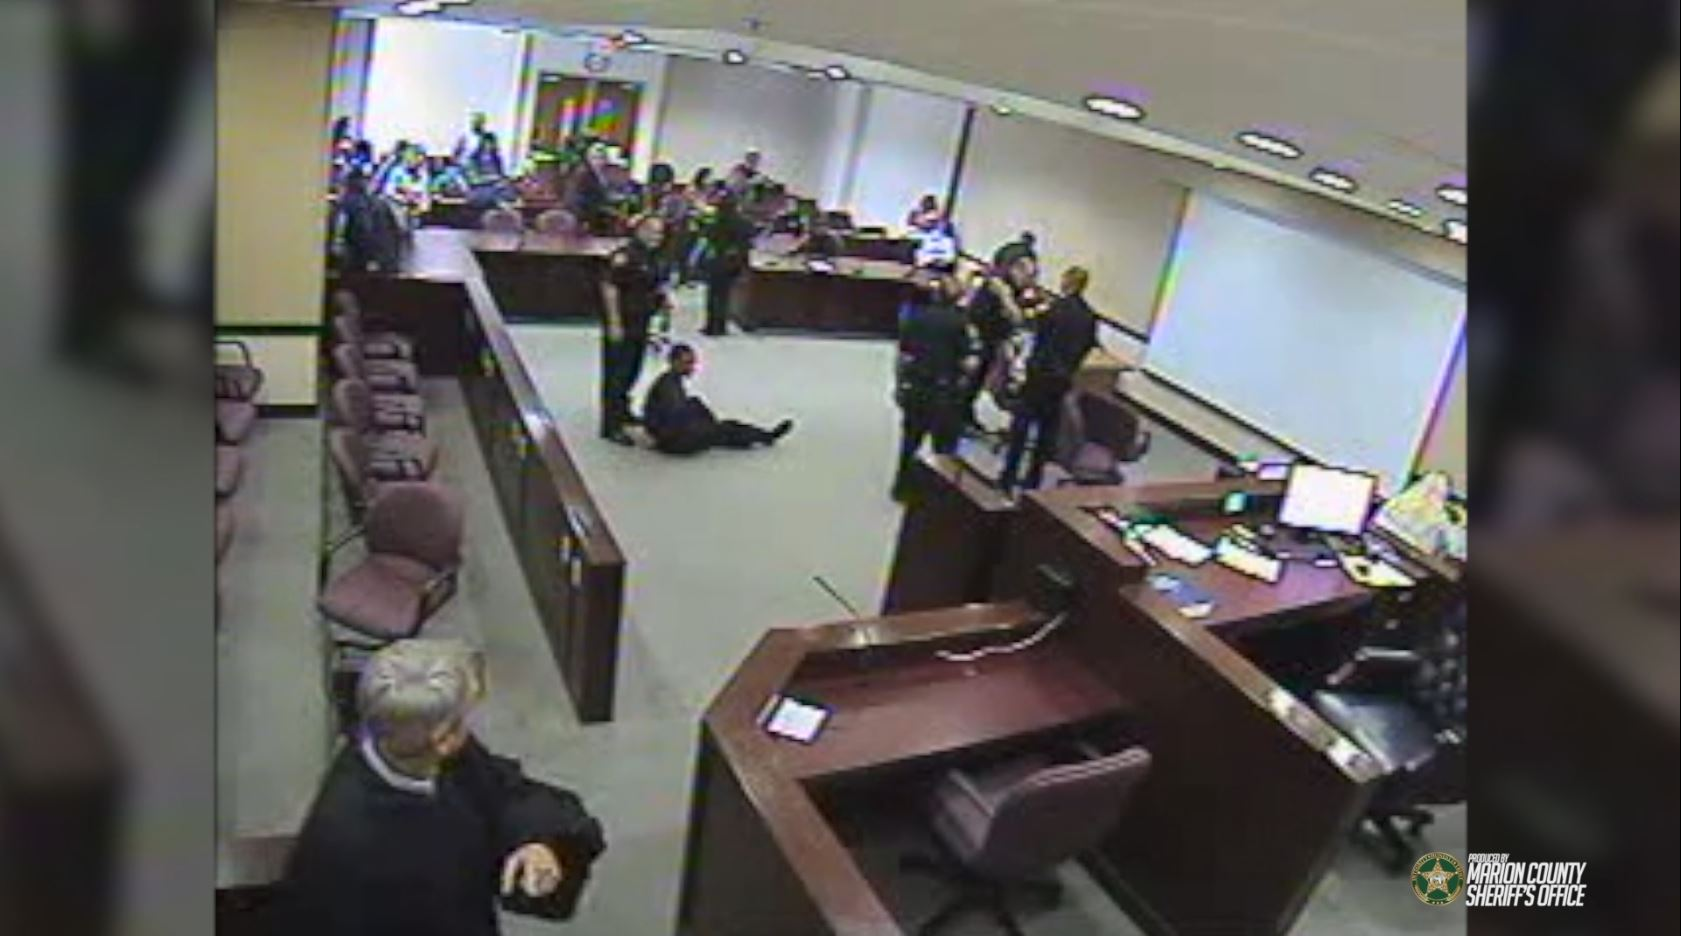 courthouse fight.JPG